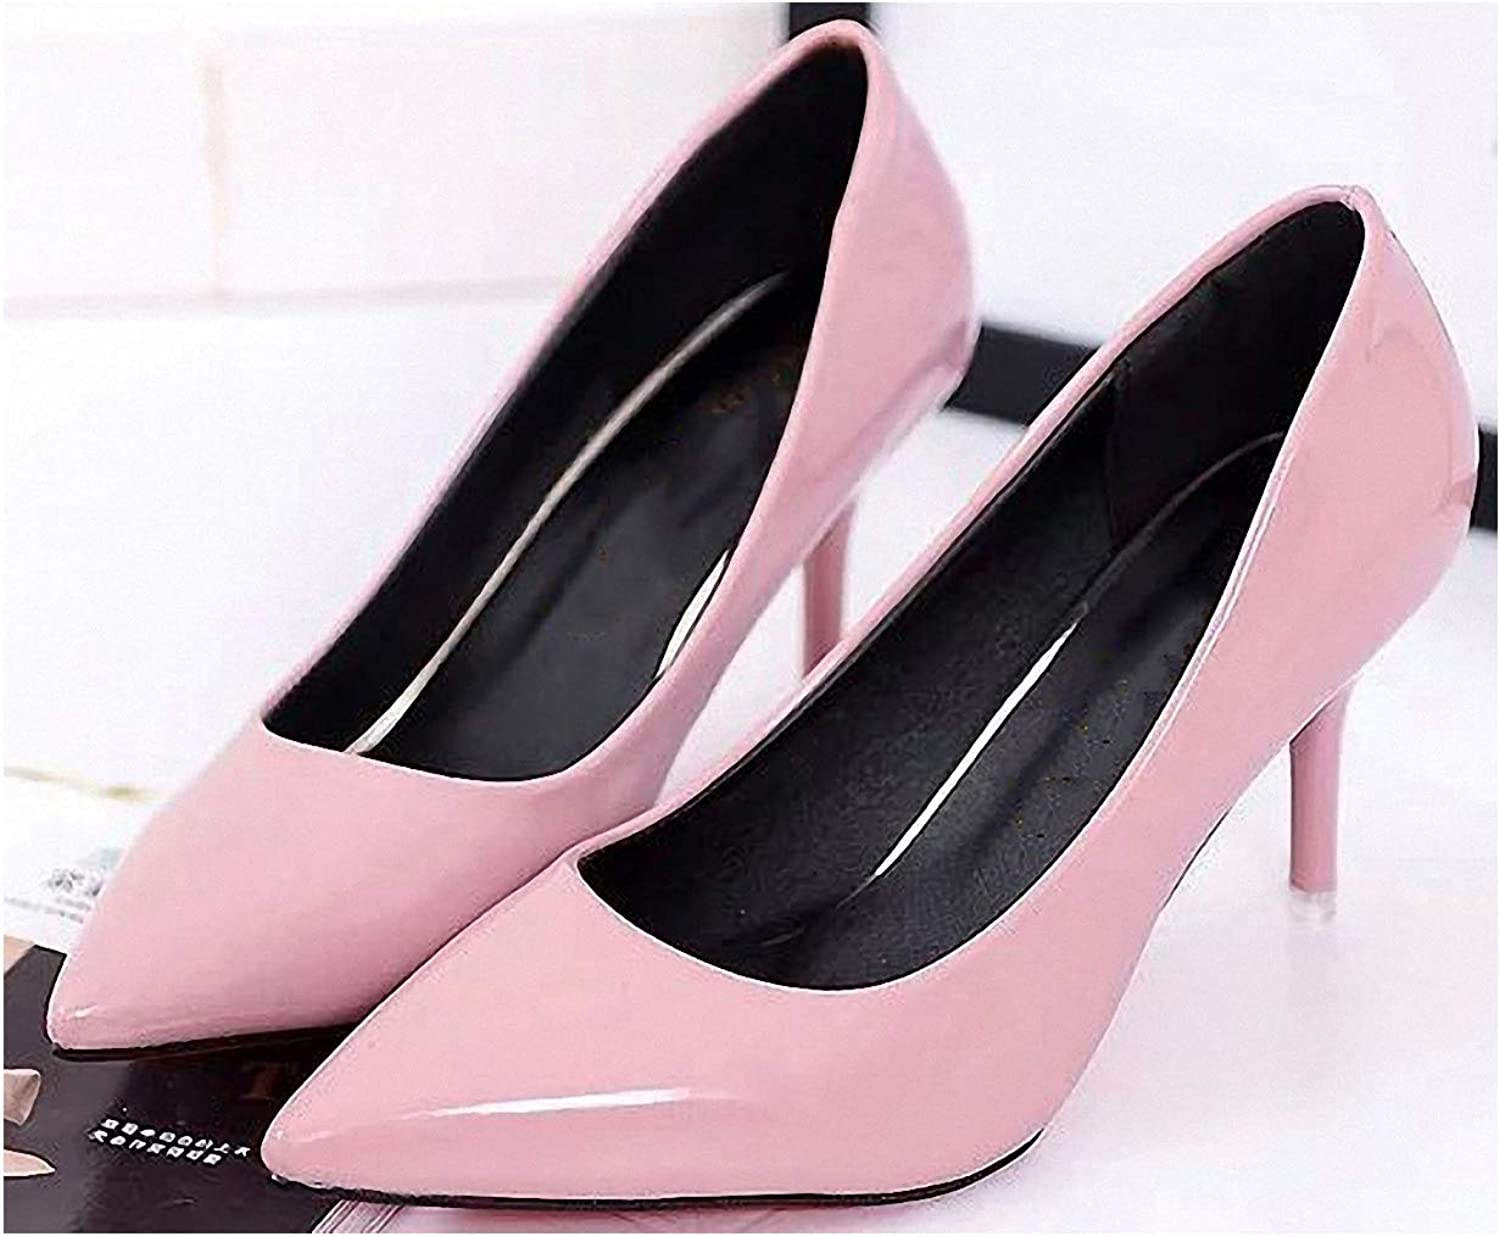 Womens High-Heeled Pumps shoes Women shoes Pointed Toe Pumps Patent Leather Dress Red 8cm High Heels Boat shoes Shadow Wedding shoes shoes women